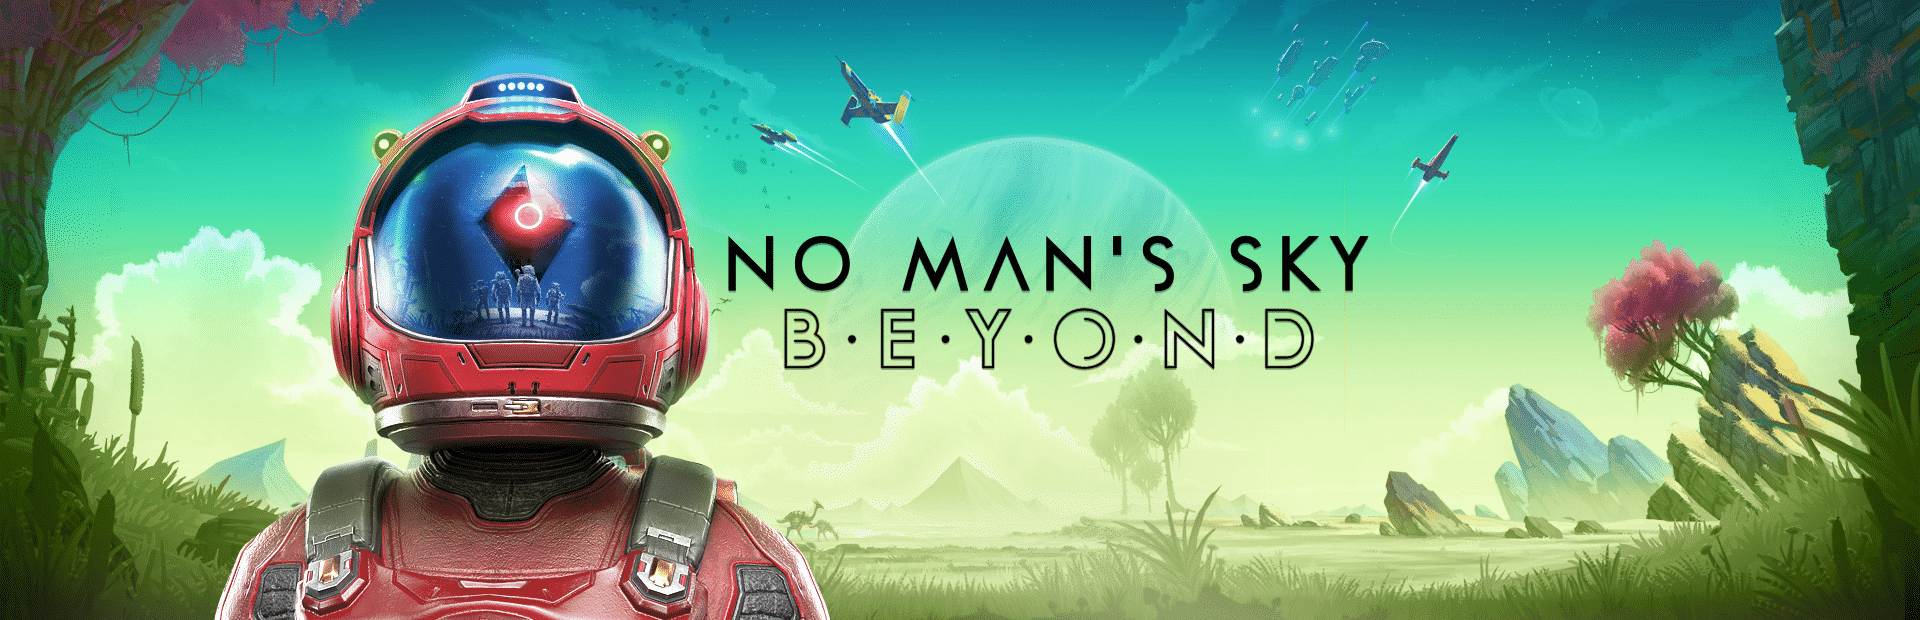 No Man's Sky: Beyond, a look into the next evolution